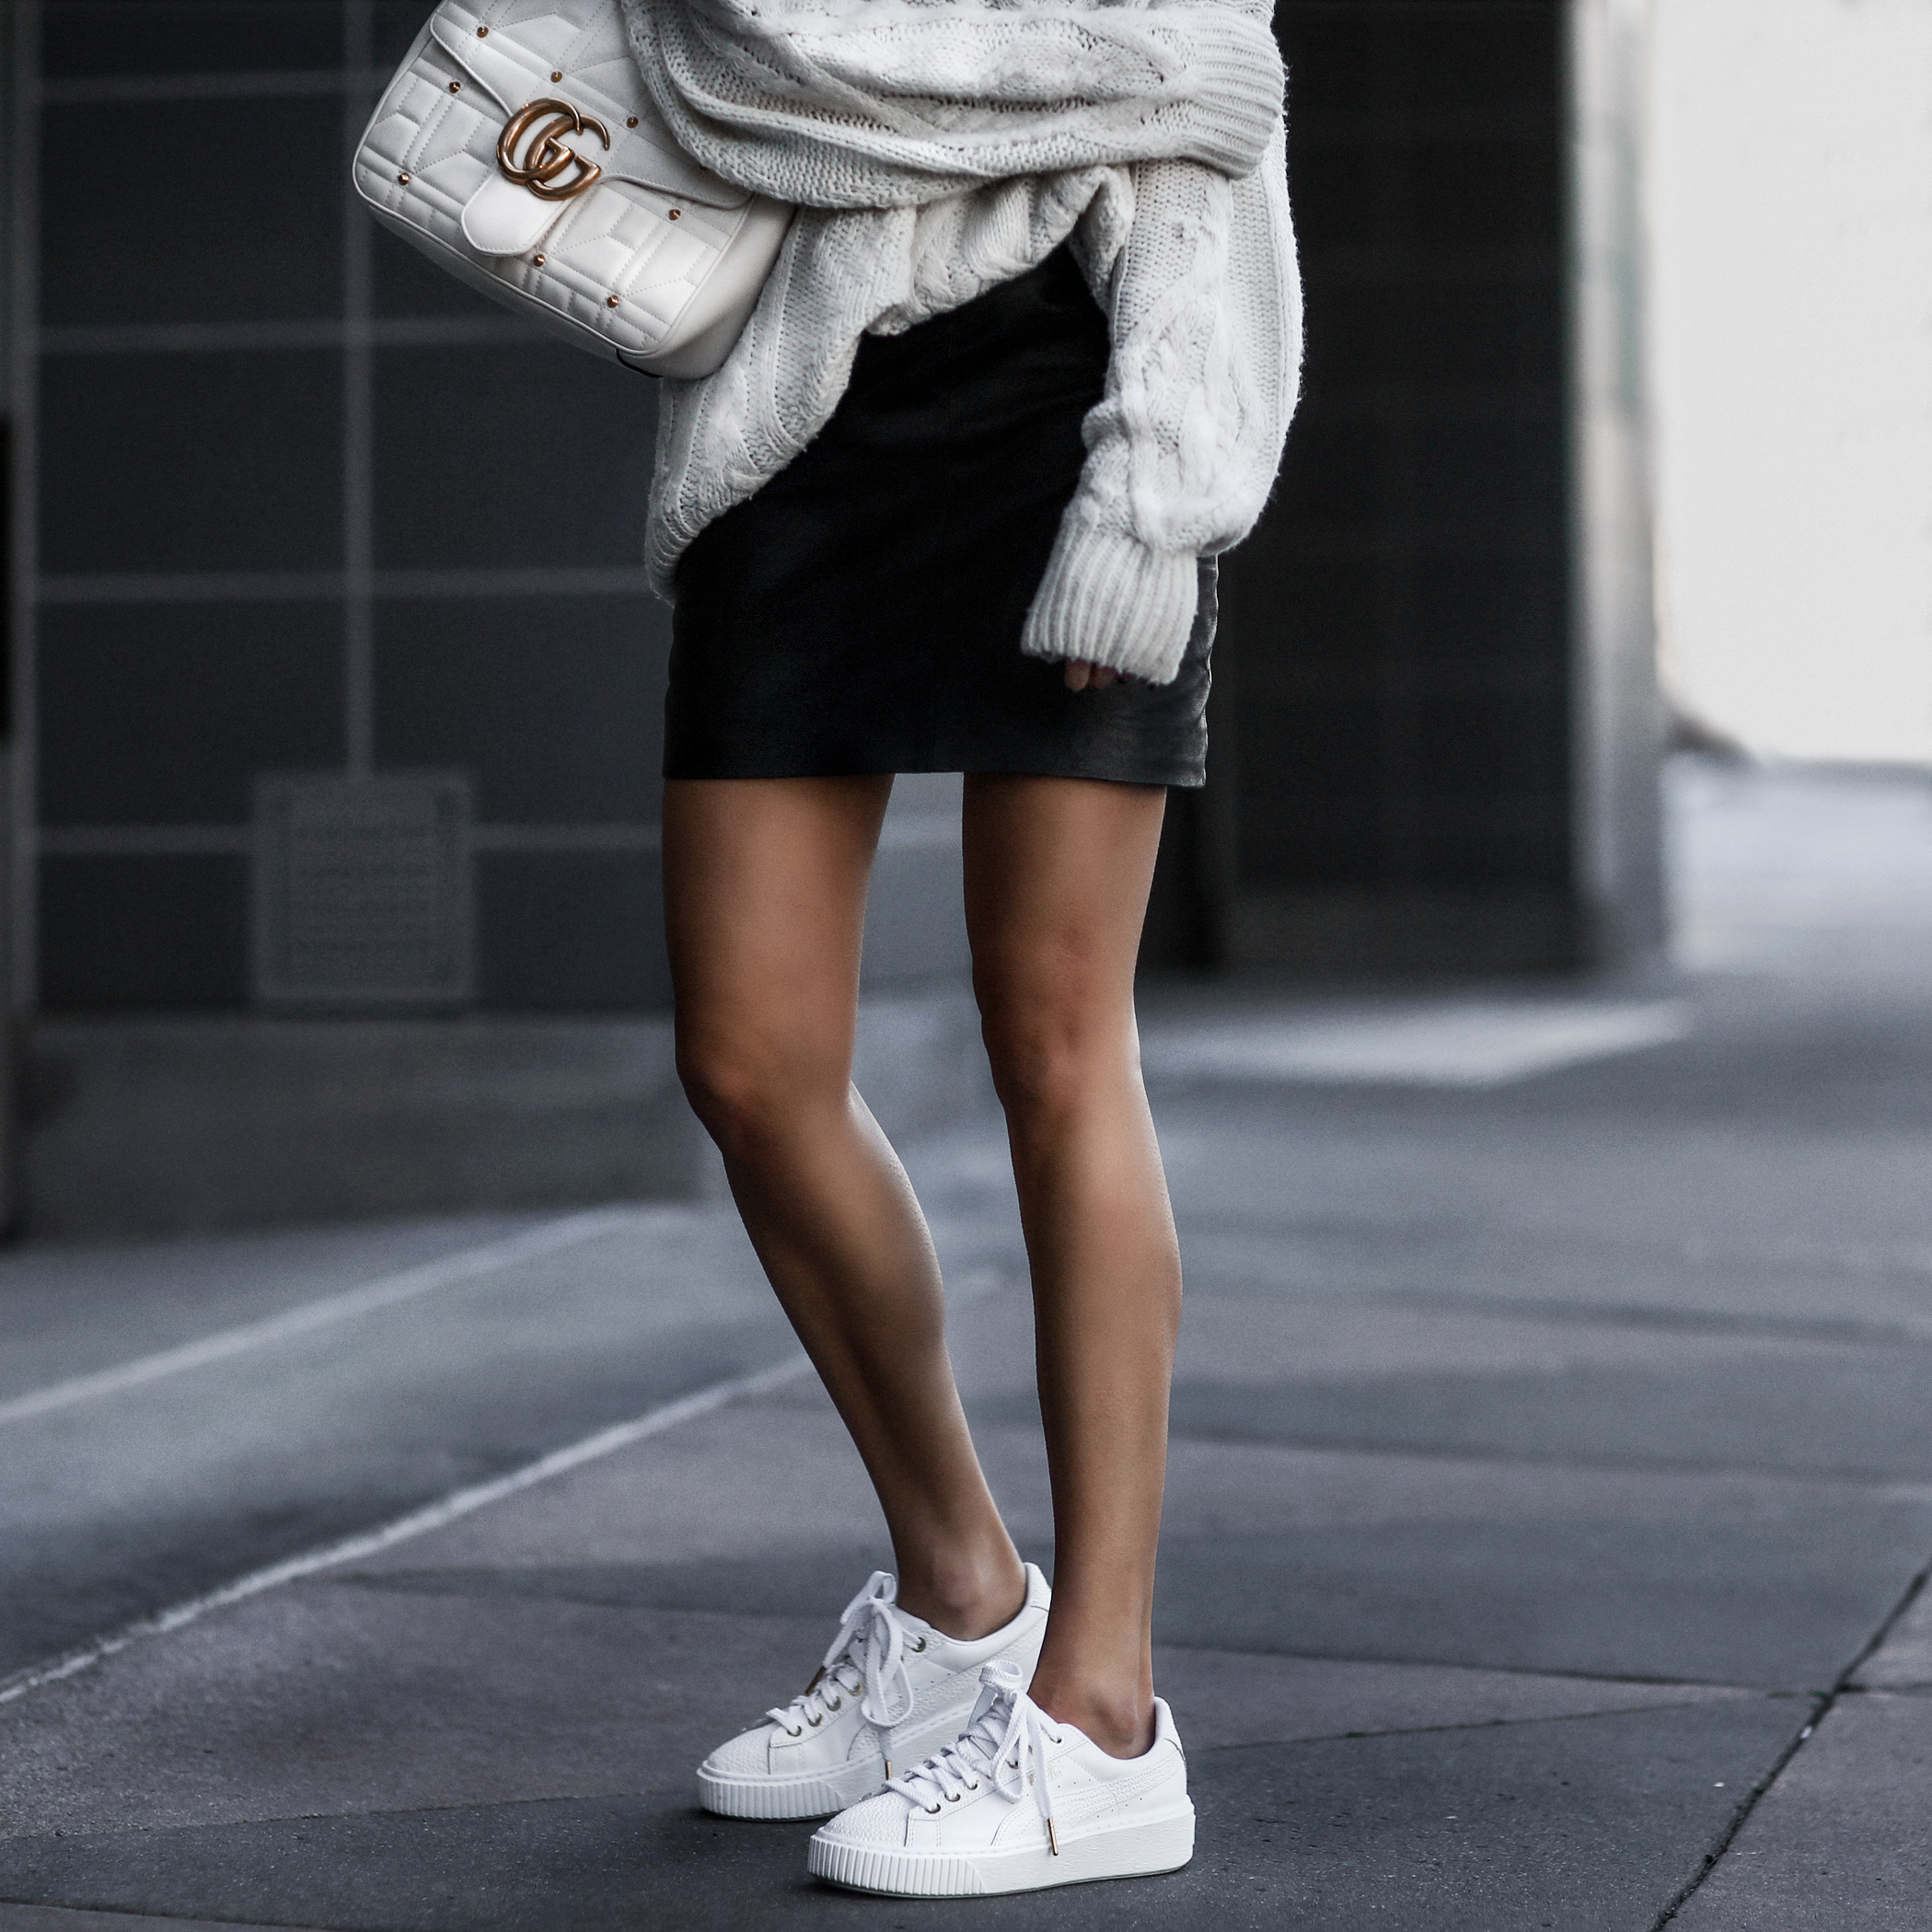 puma sneakers, leather skirt, oversized sweater, gucci bag